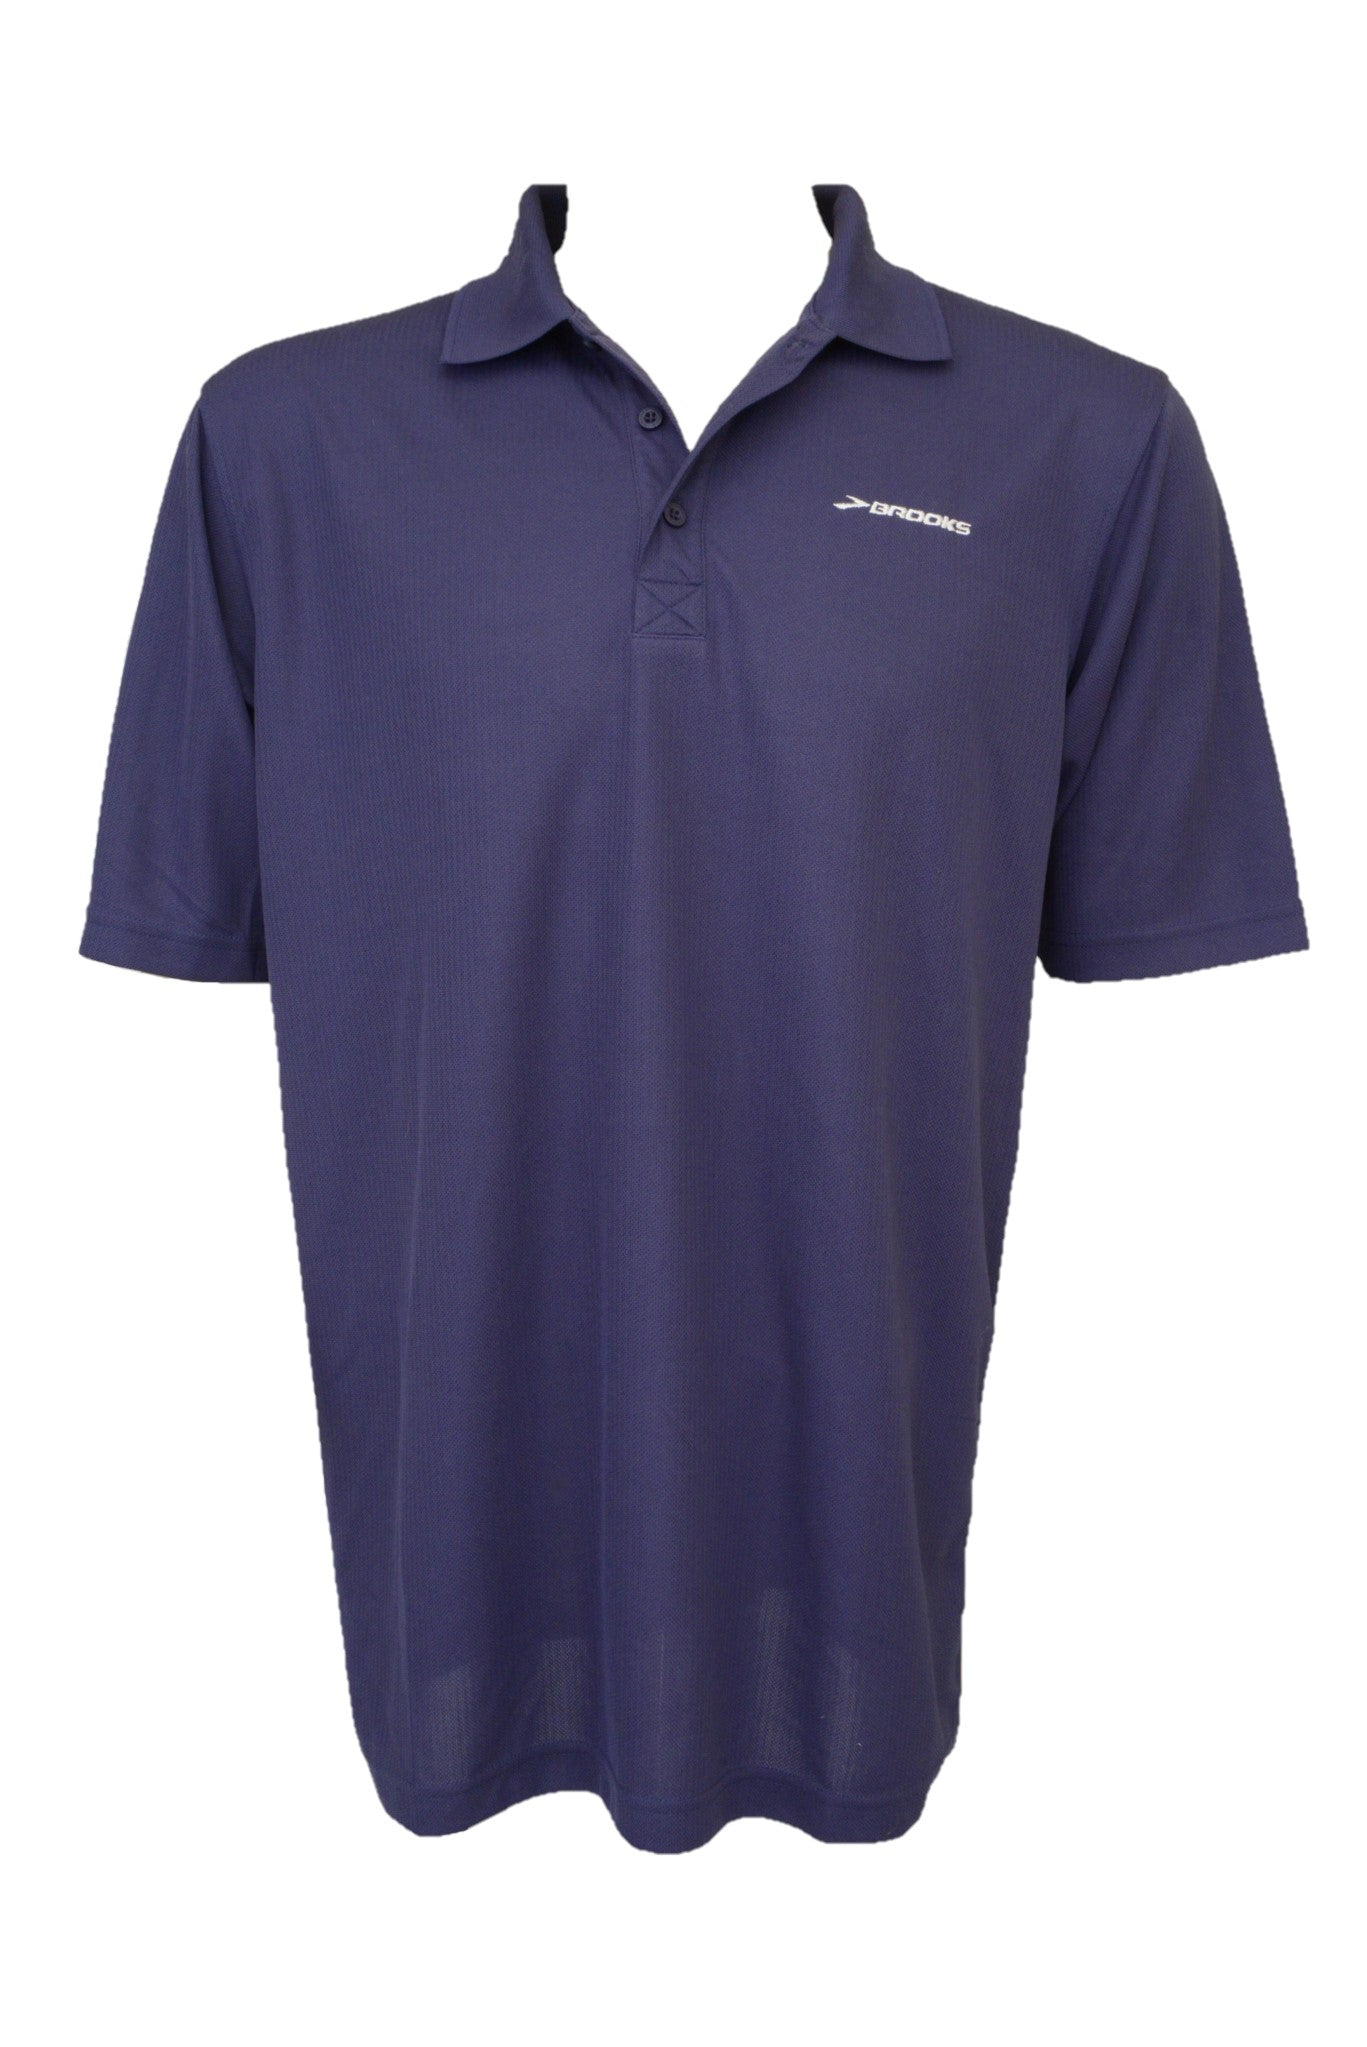 Brooks men's blue polo sports top